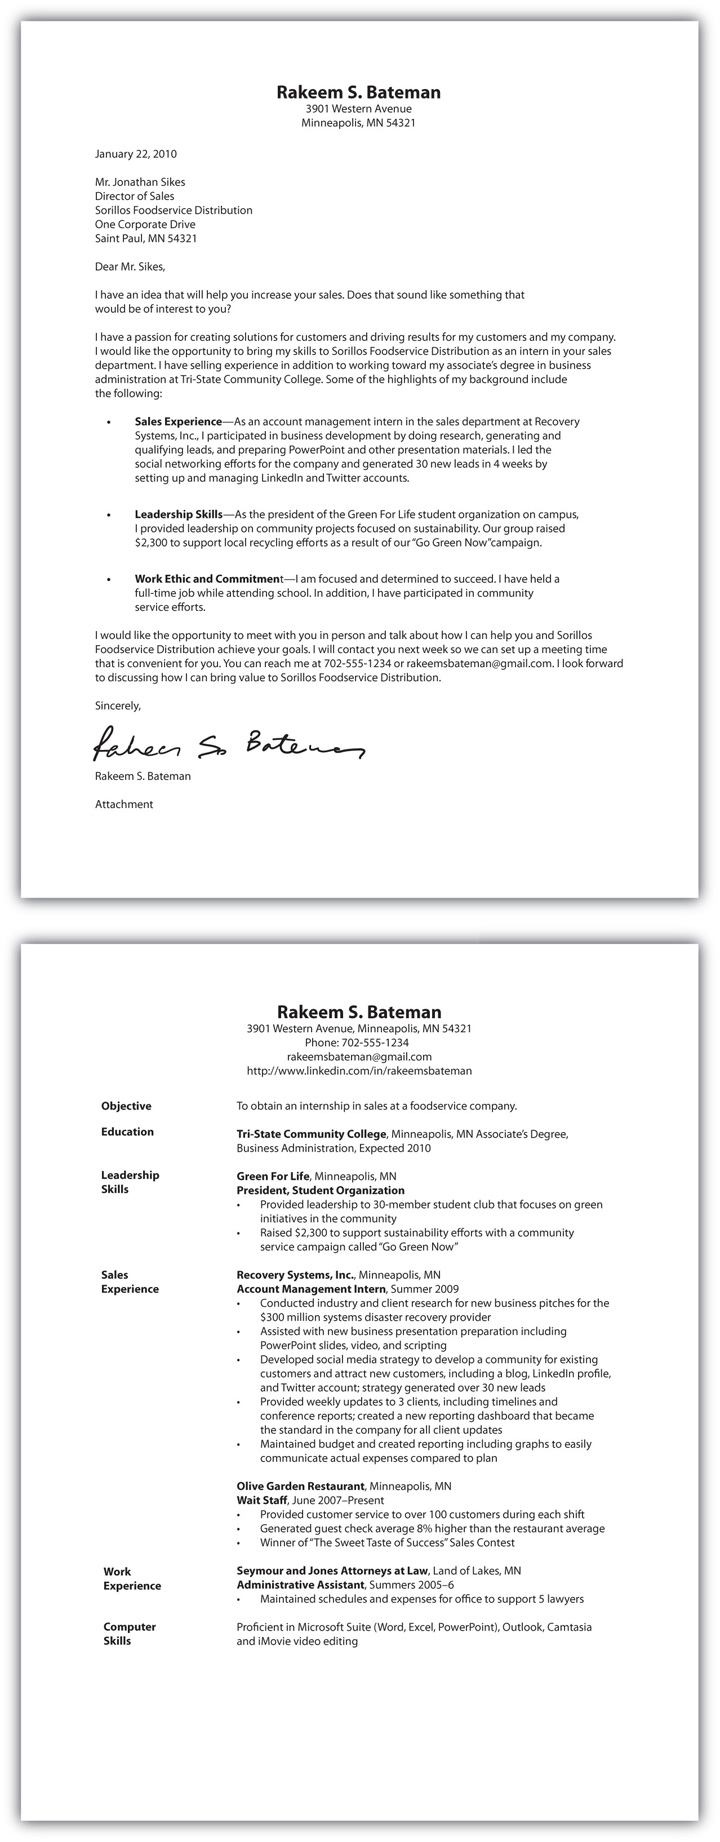 Cover Letter And Resume One Document